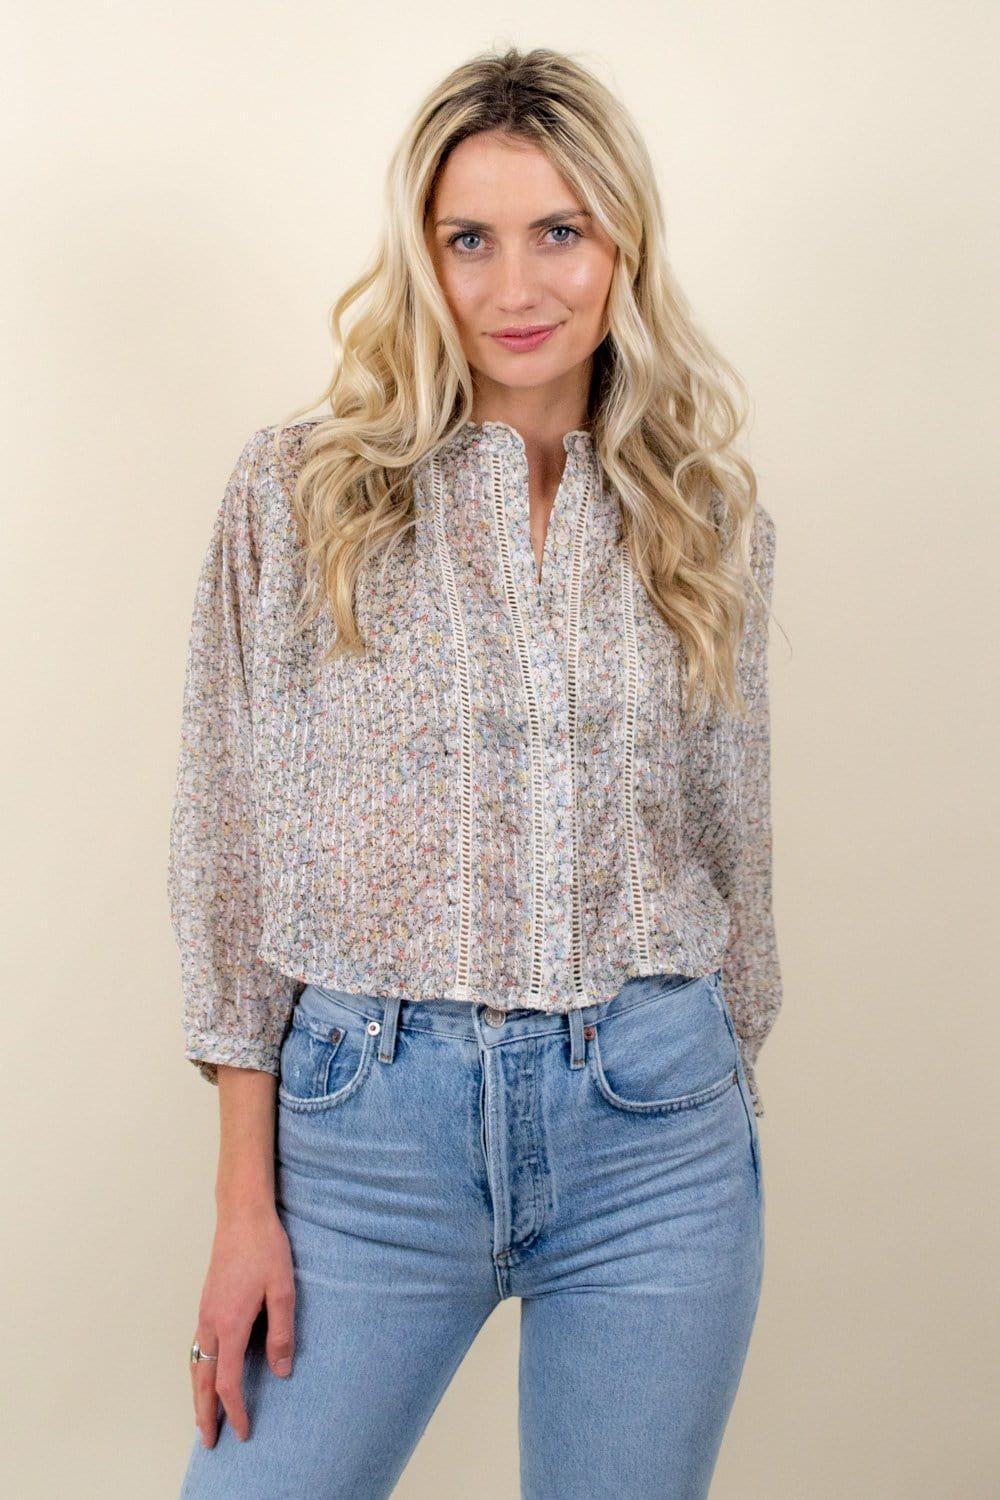 Bishop + Young St. Germain Crop Top Ivory Floral